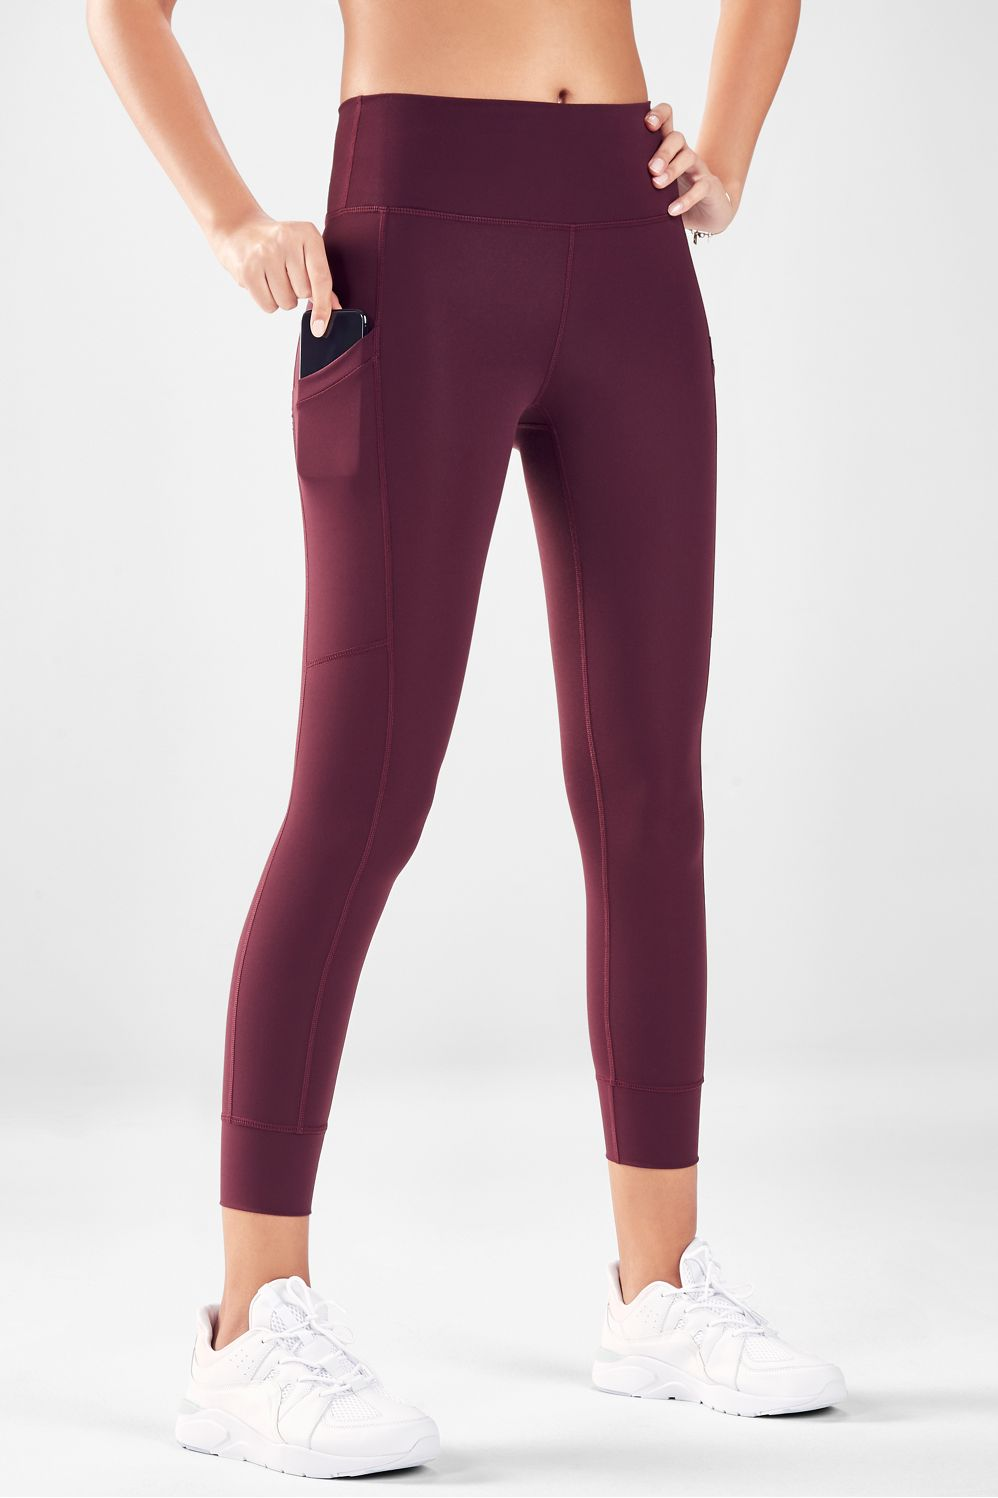 0f27b40c7c4cc High-Waisted Statement PureLuxe 7/8 - Fabletics